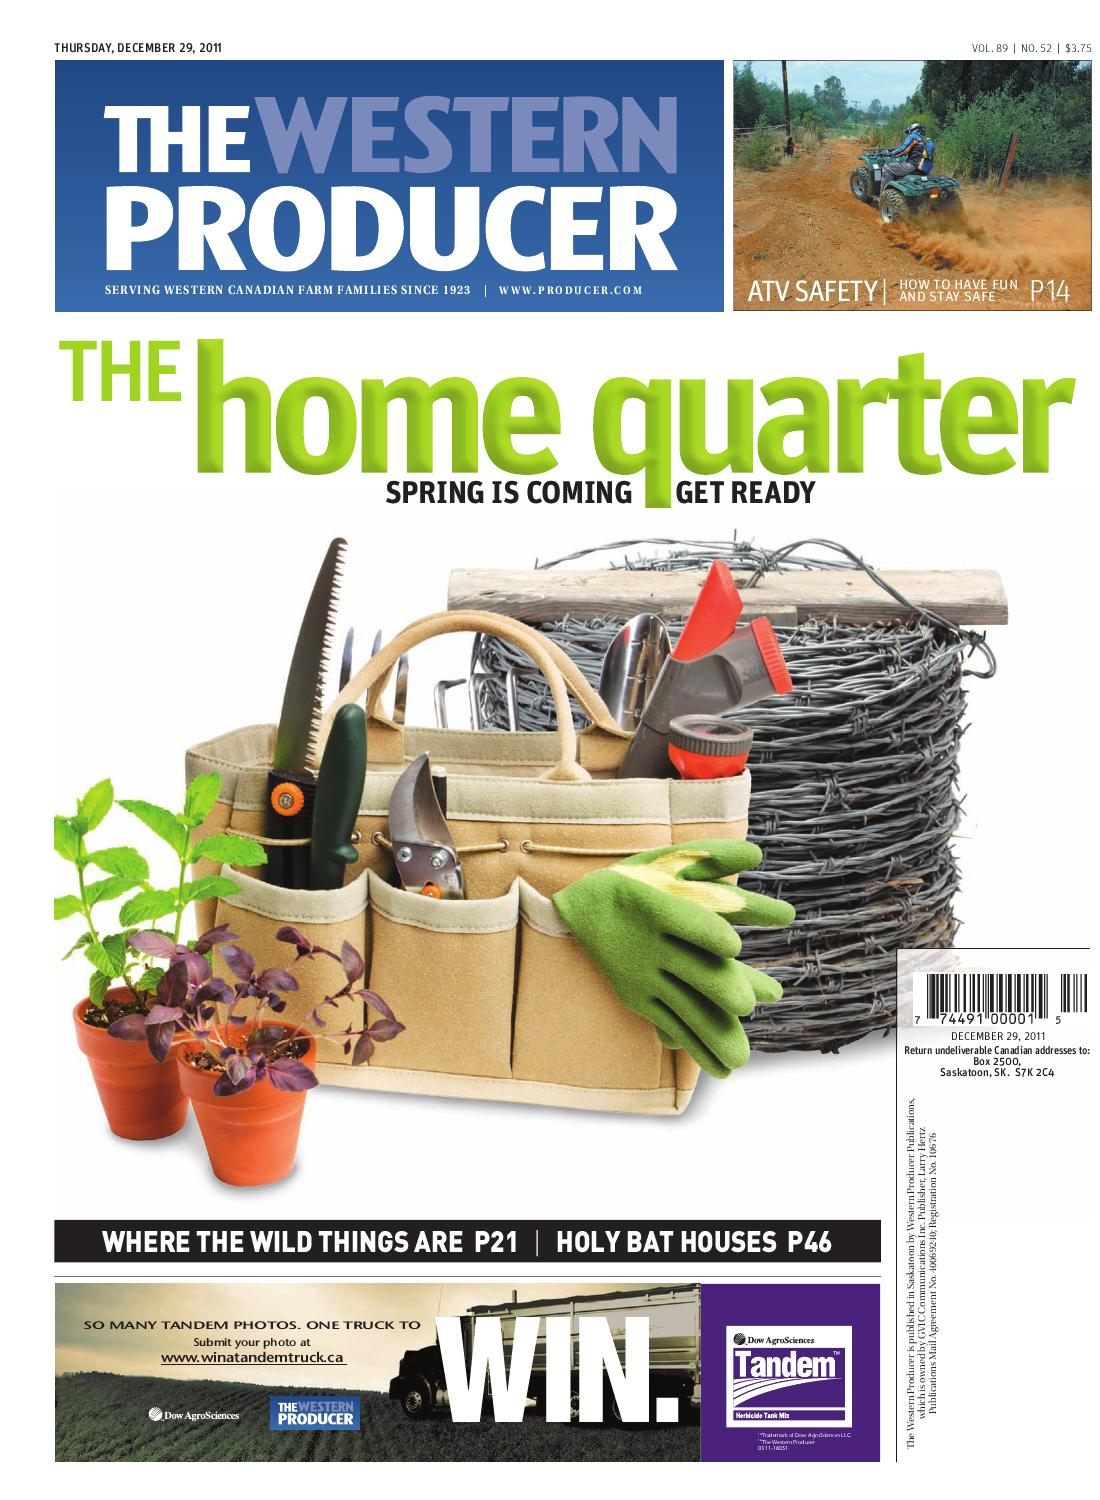 December 29, 2011 - The Western Producer by The Western Producer - issuu